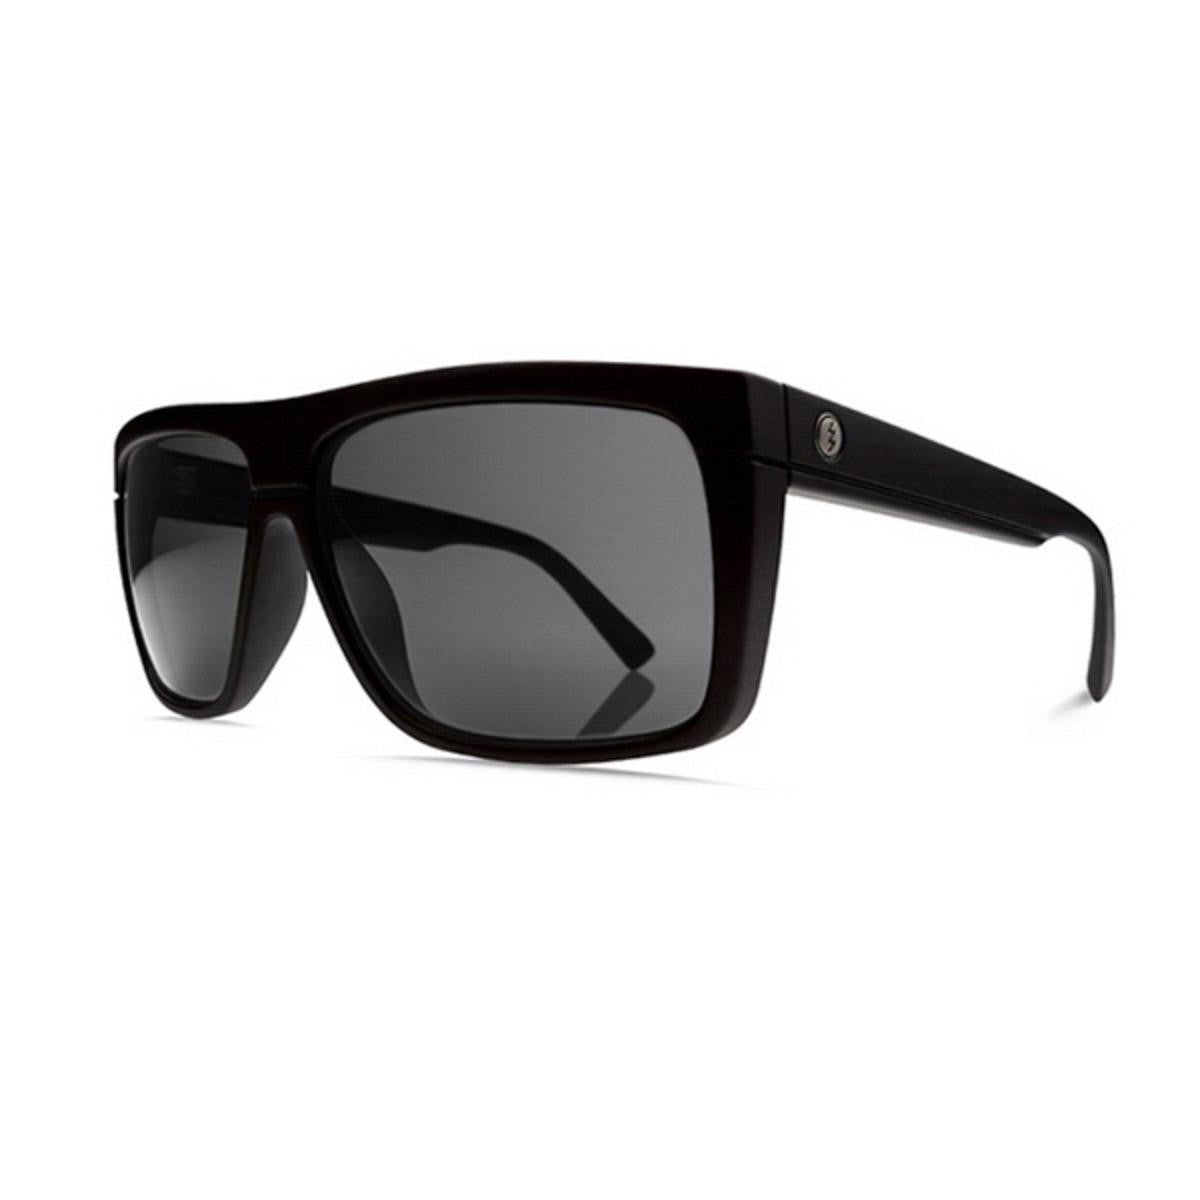 Electric Black Top Men's Sunglasses